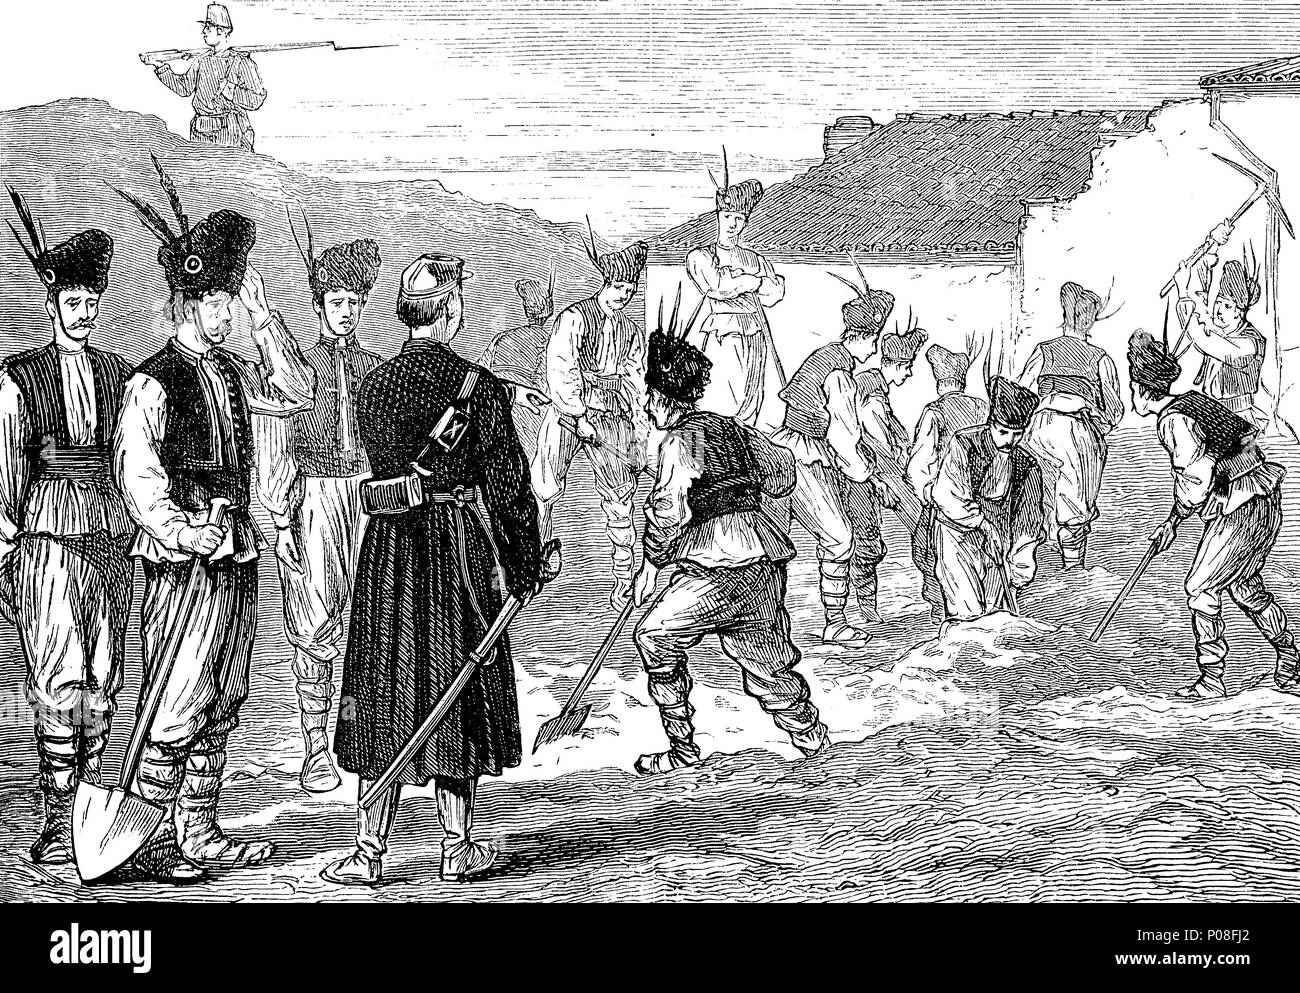 Romanian militia throwing up earthworks at Giurgevo, Romania, Russo-Turkish War of 1787-1792, digital improved reproduction of an original print from the year 1881 - Stock Image